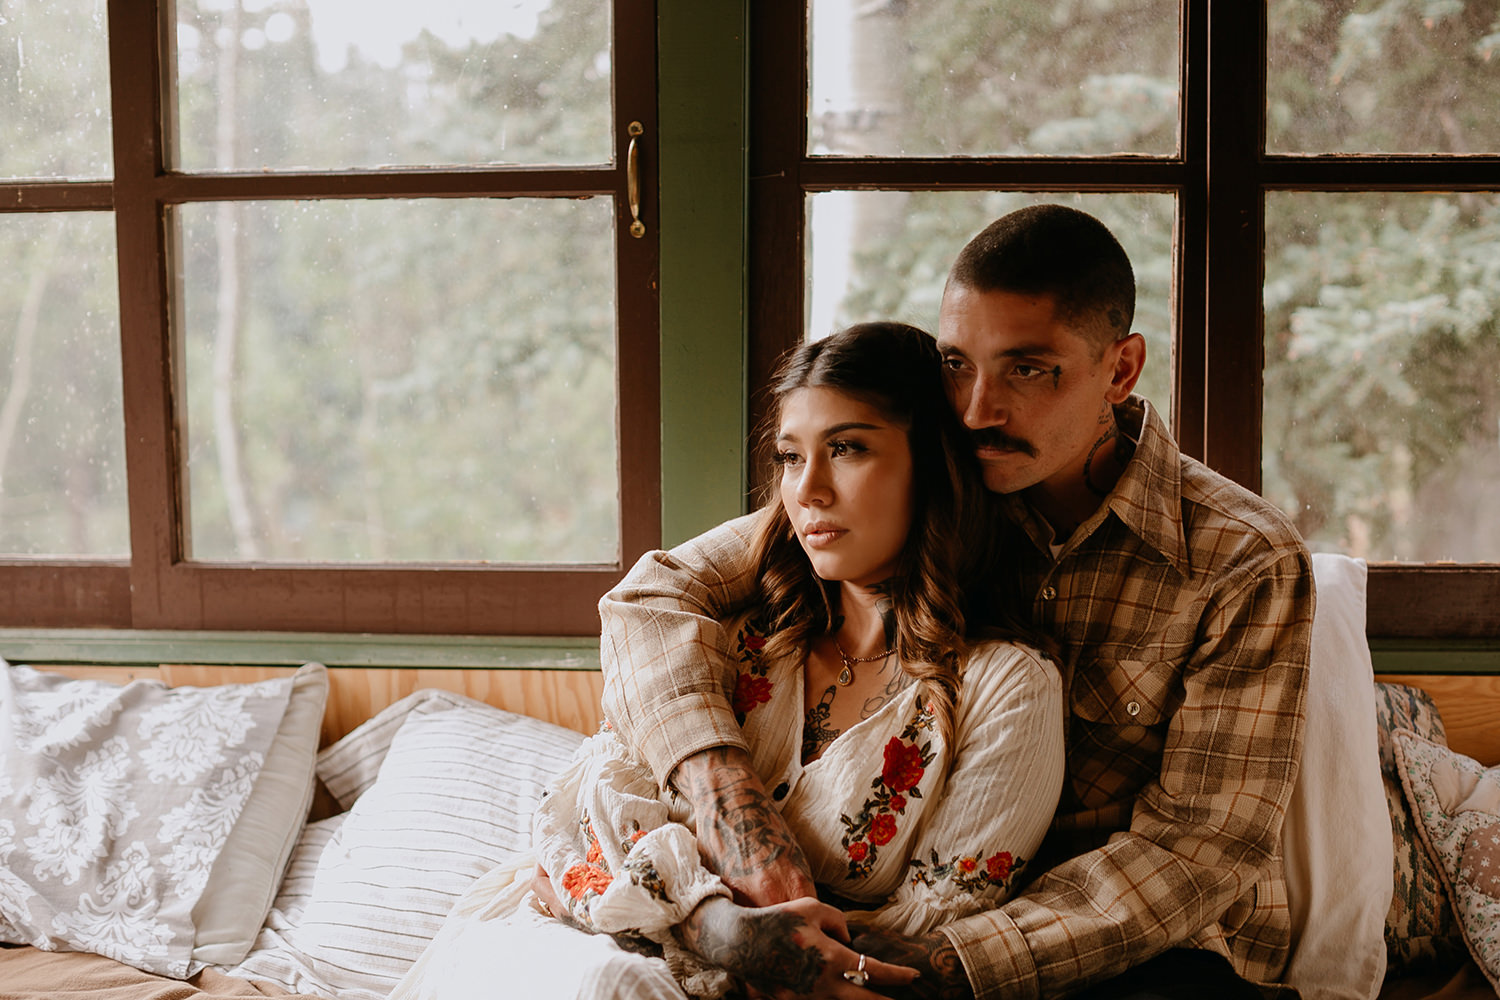 Bailey Colorado Denver Wedding Engagement Photographer Liz Osban Cheyenne Wyoming Mountain Elopement Boho bohemian vintage film tattoo non traditional tattooed rock and roll 37.jpg